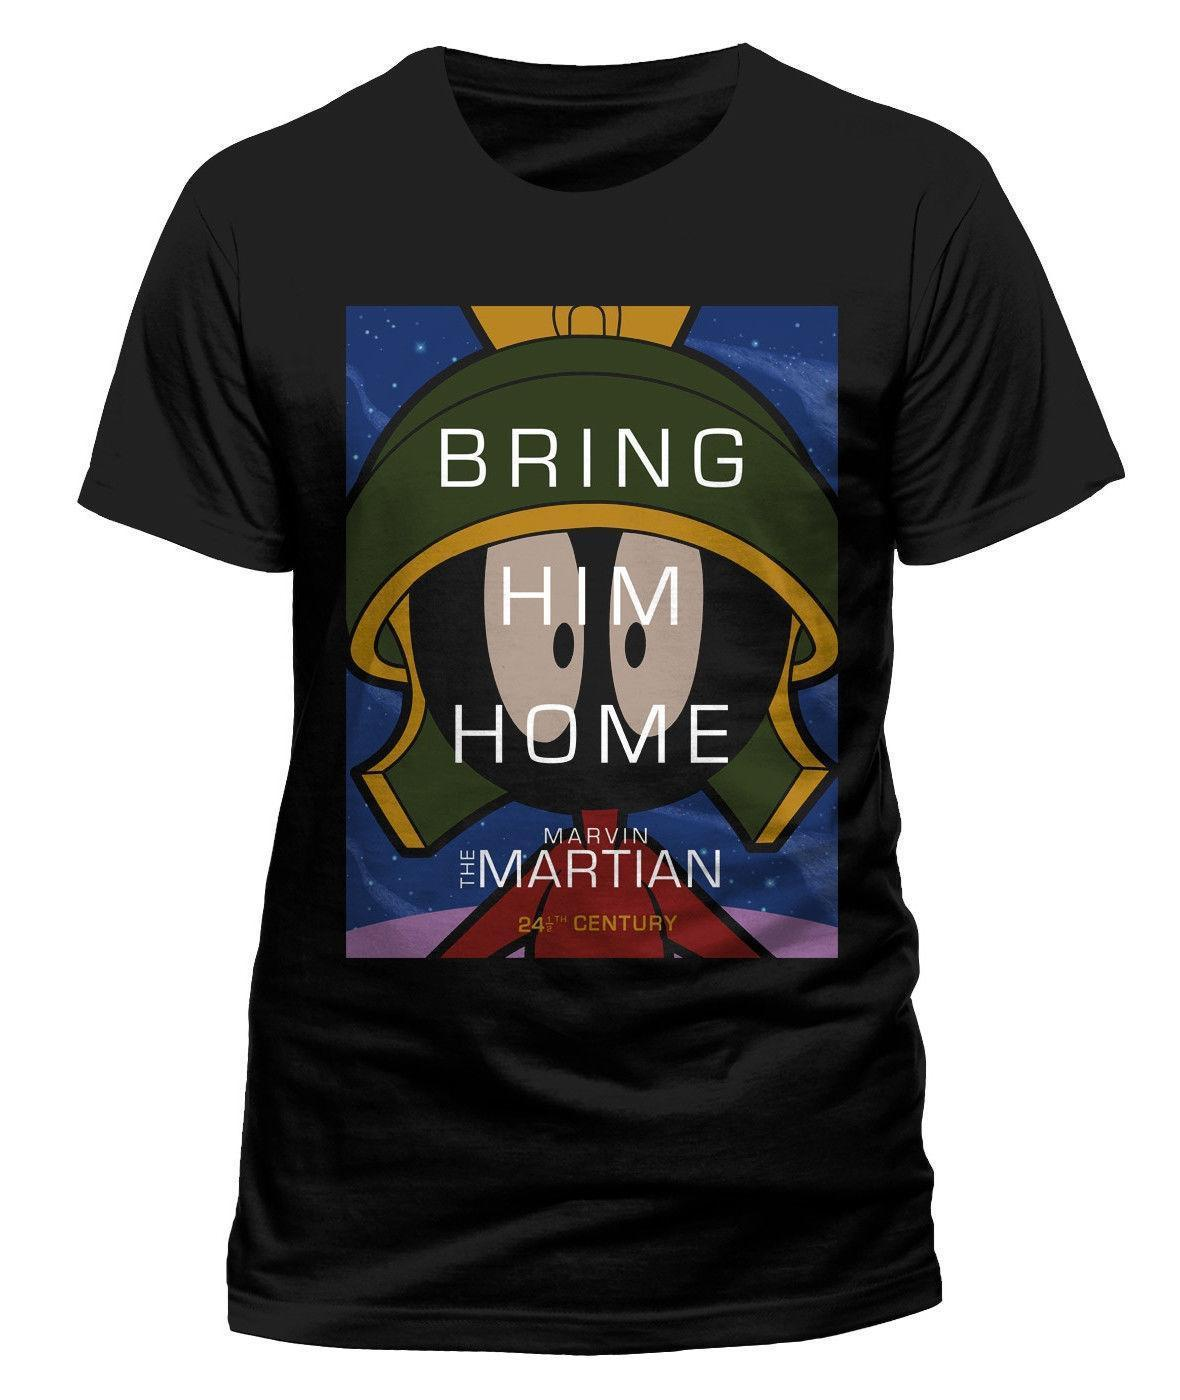 4f207196beb7 Looney Tunes Marvin The Martian  Bring Him Home  T Shirt NEW   OFFICIAL! Urban  T Shirts Irish T Shirts From Baisheng05